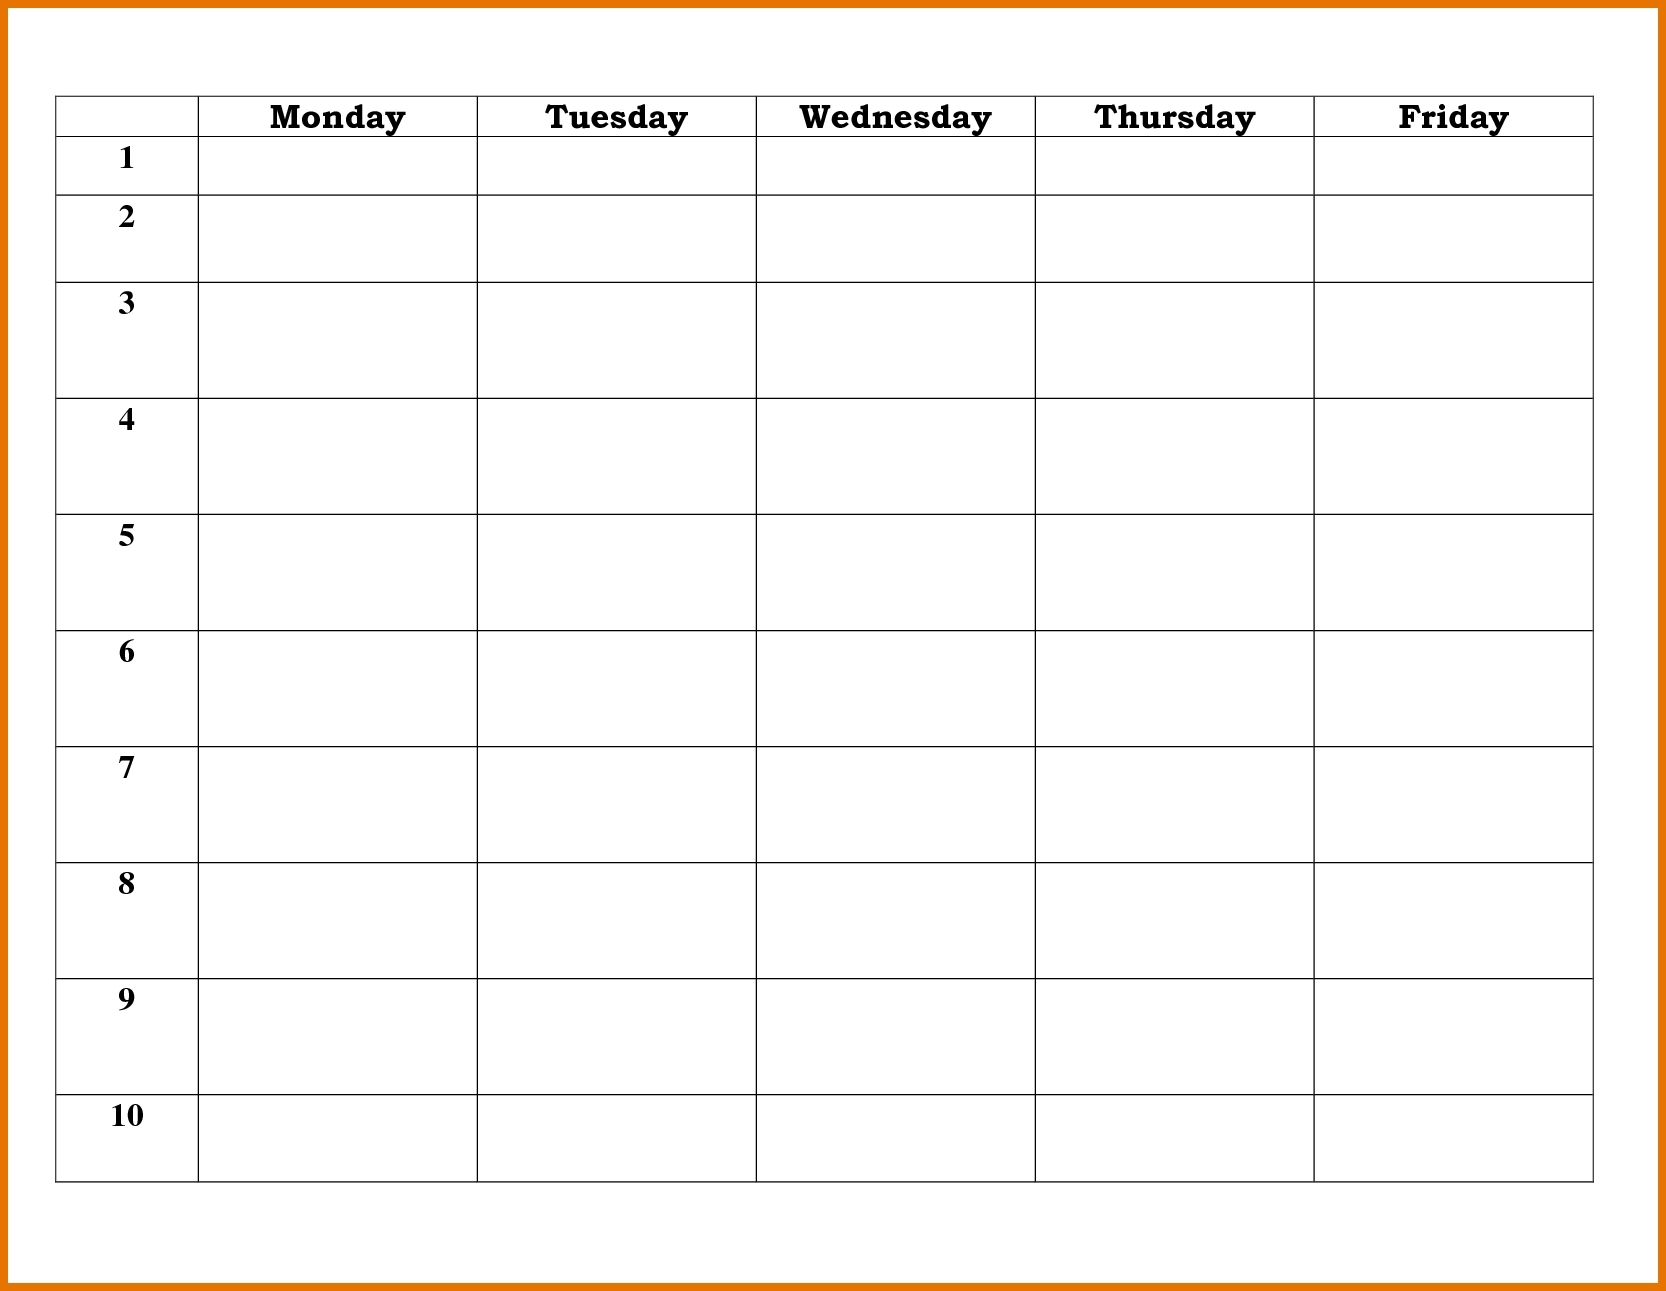 Blank 5 Day School Timetable | Calendar Printing Example inside Day By Day Schedule Template